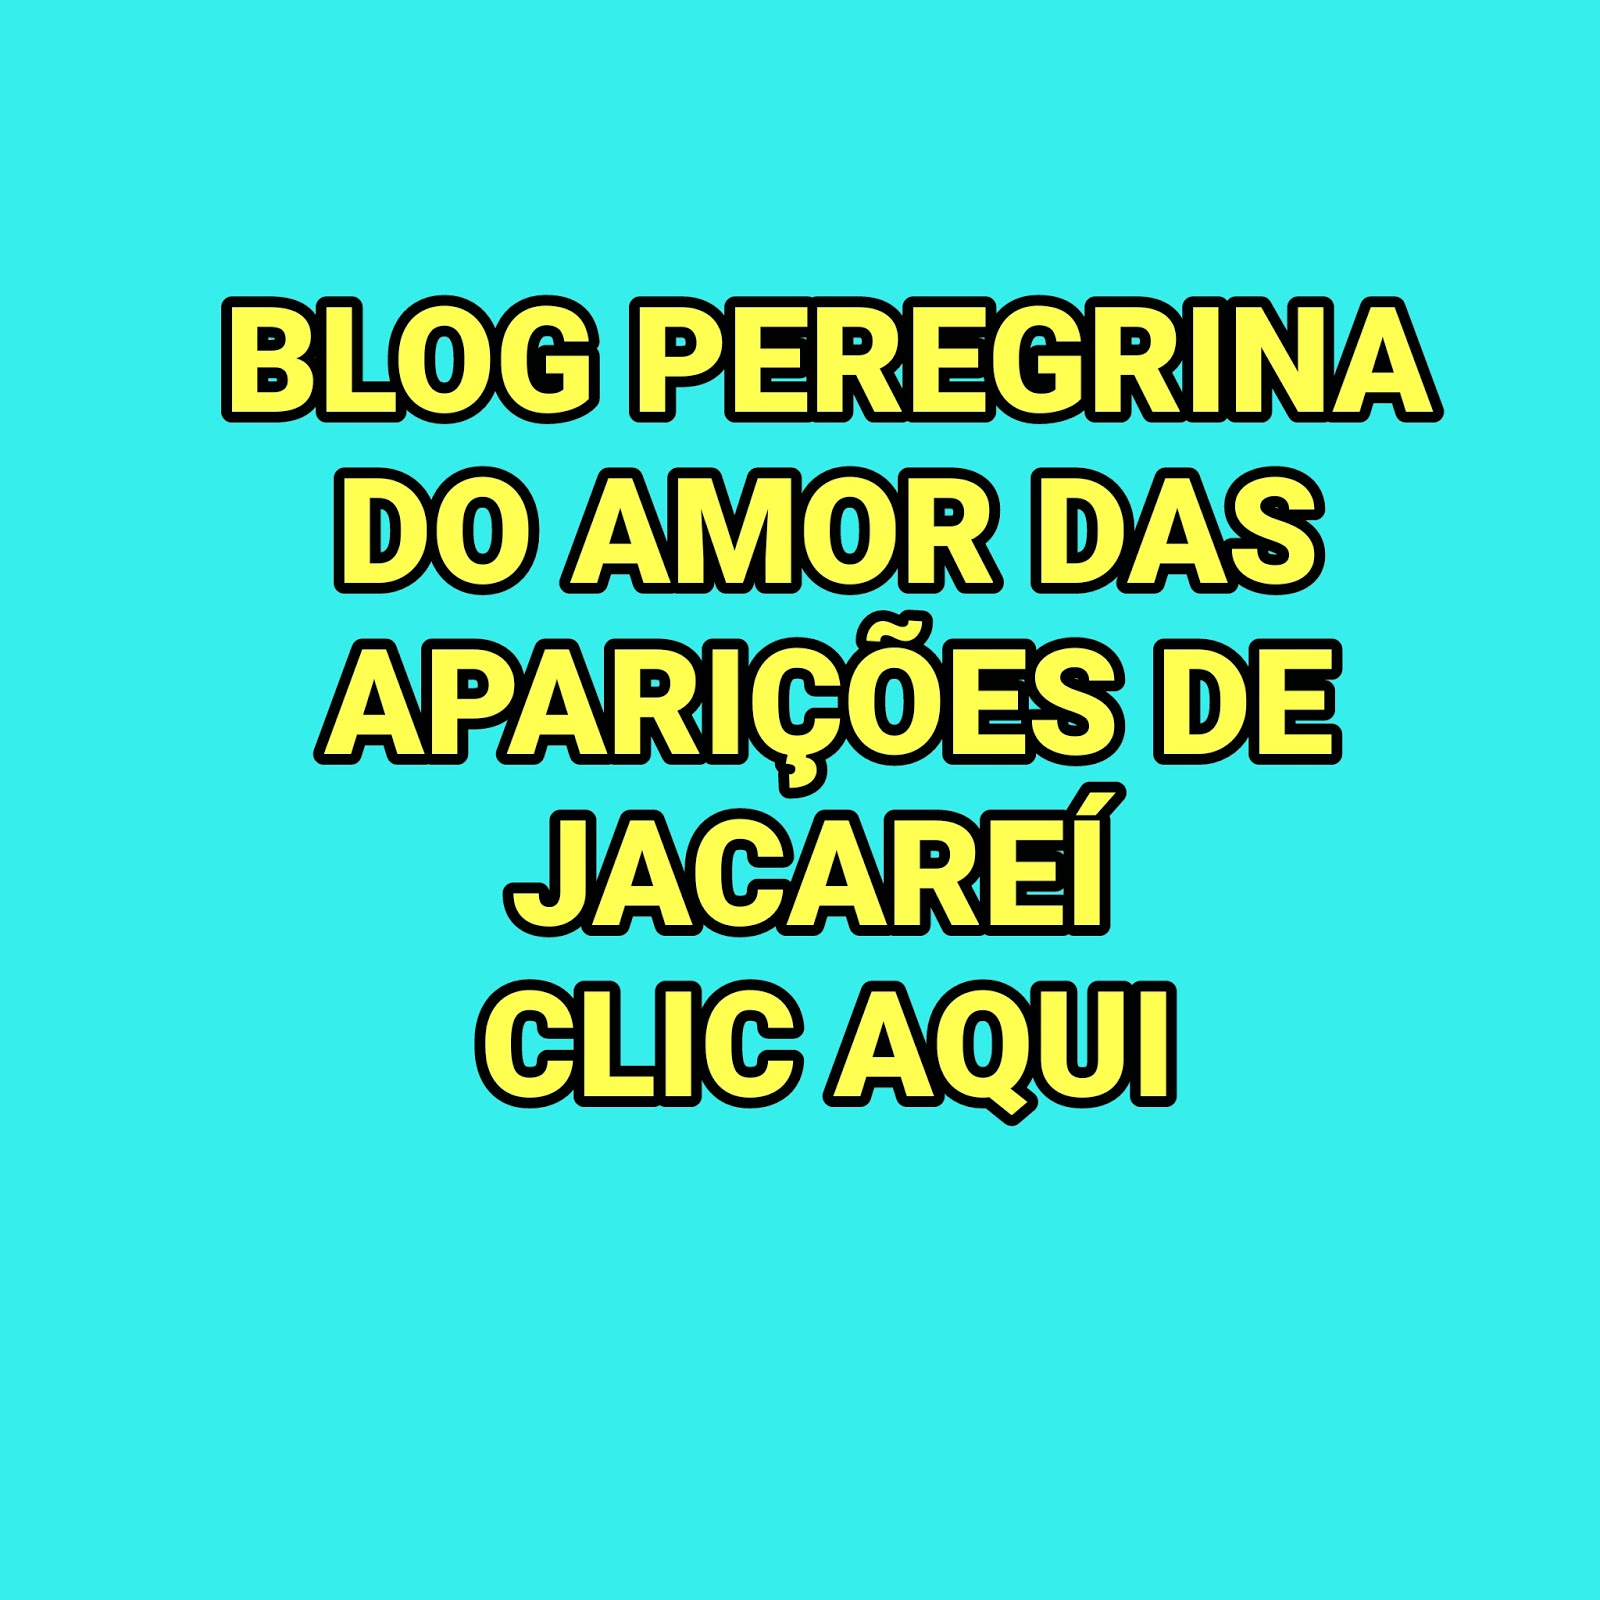 BLOG PEREGRINA DO AMOR